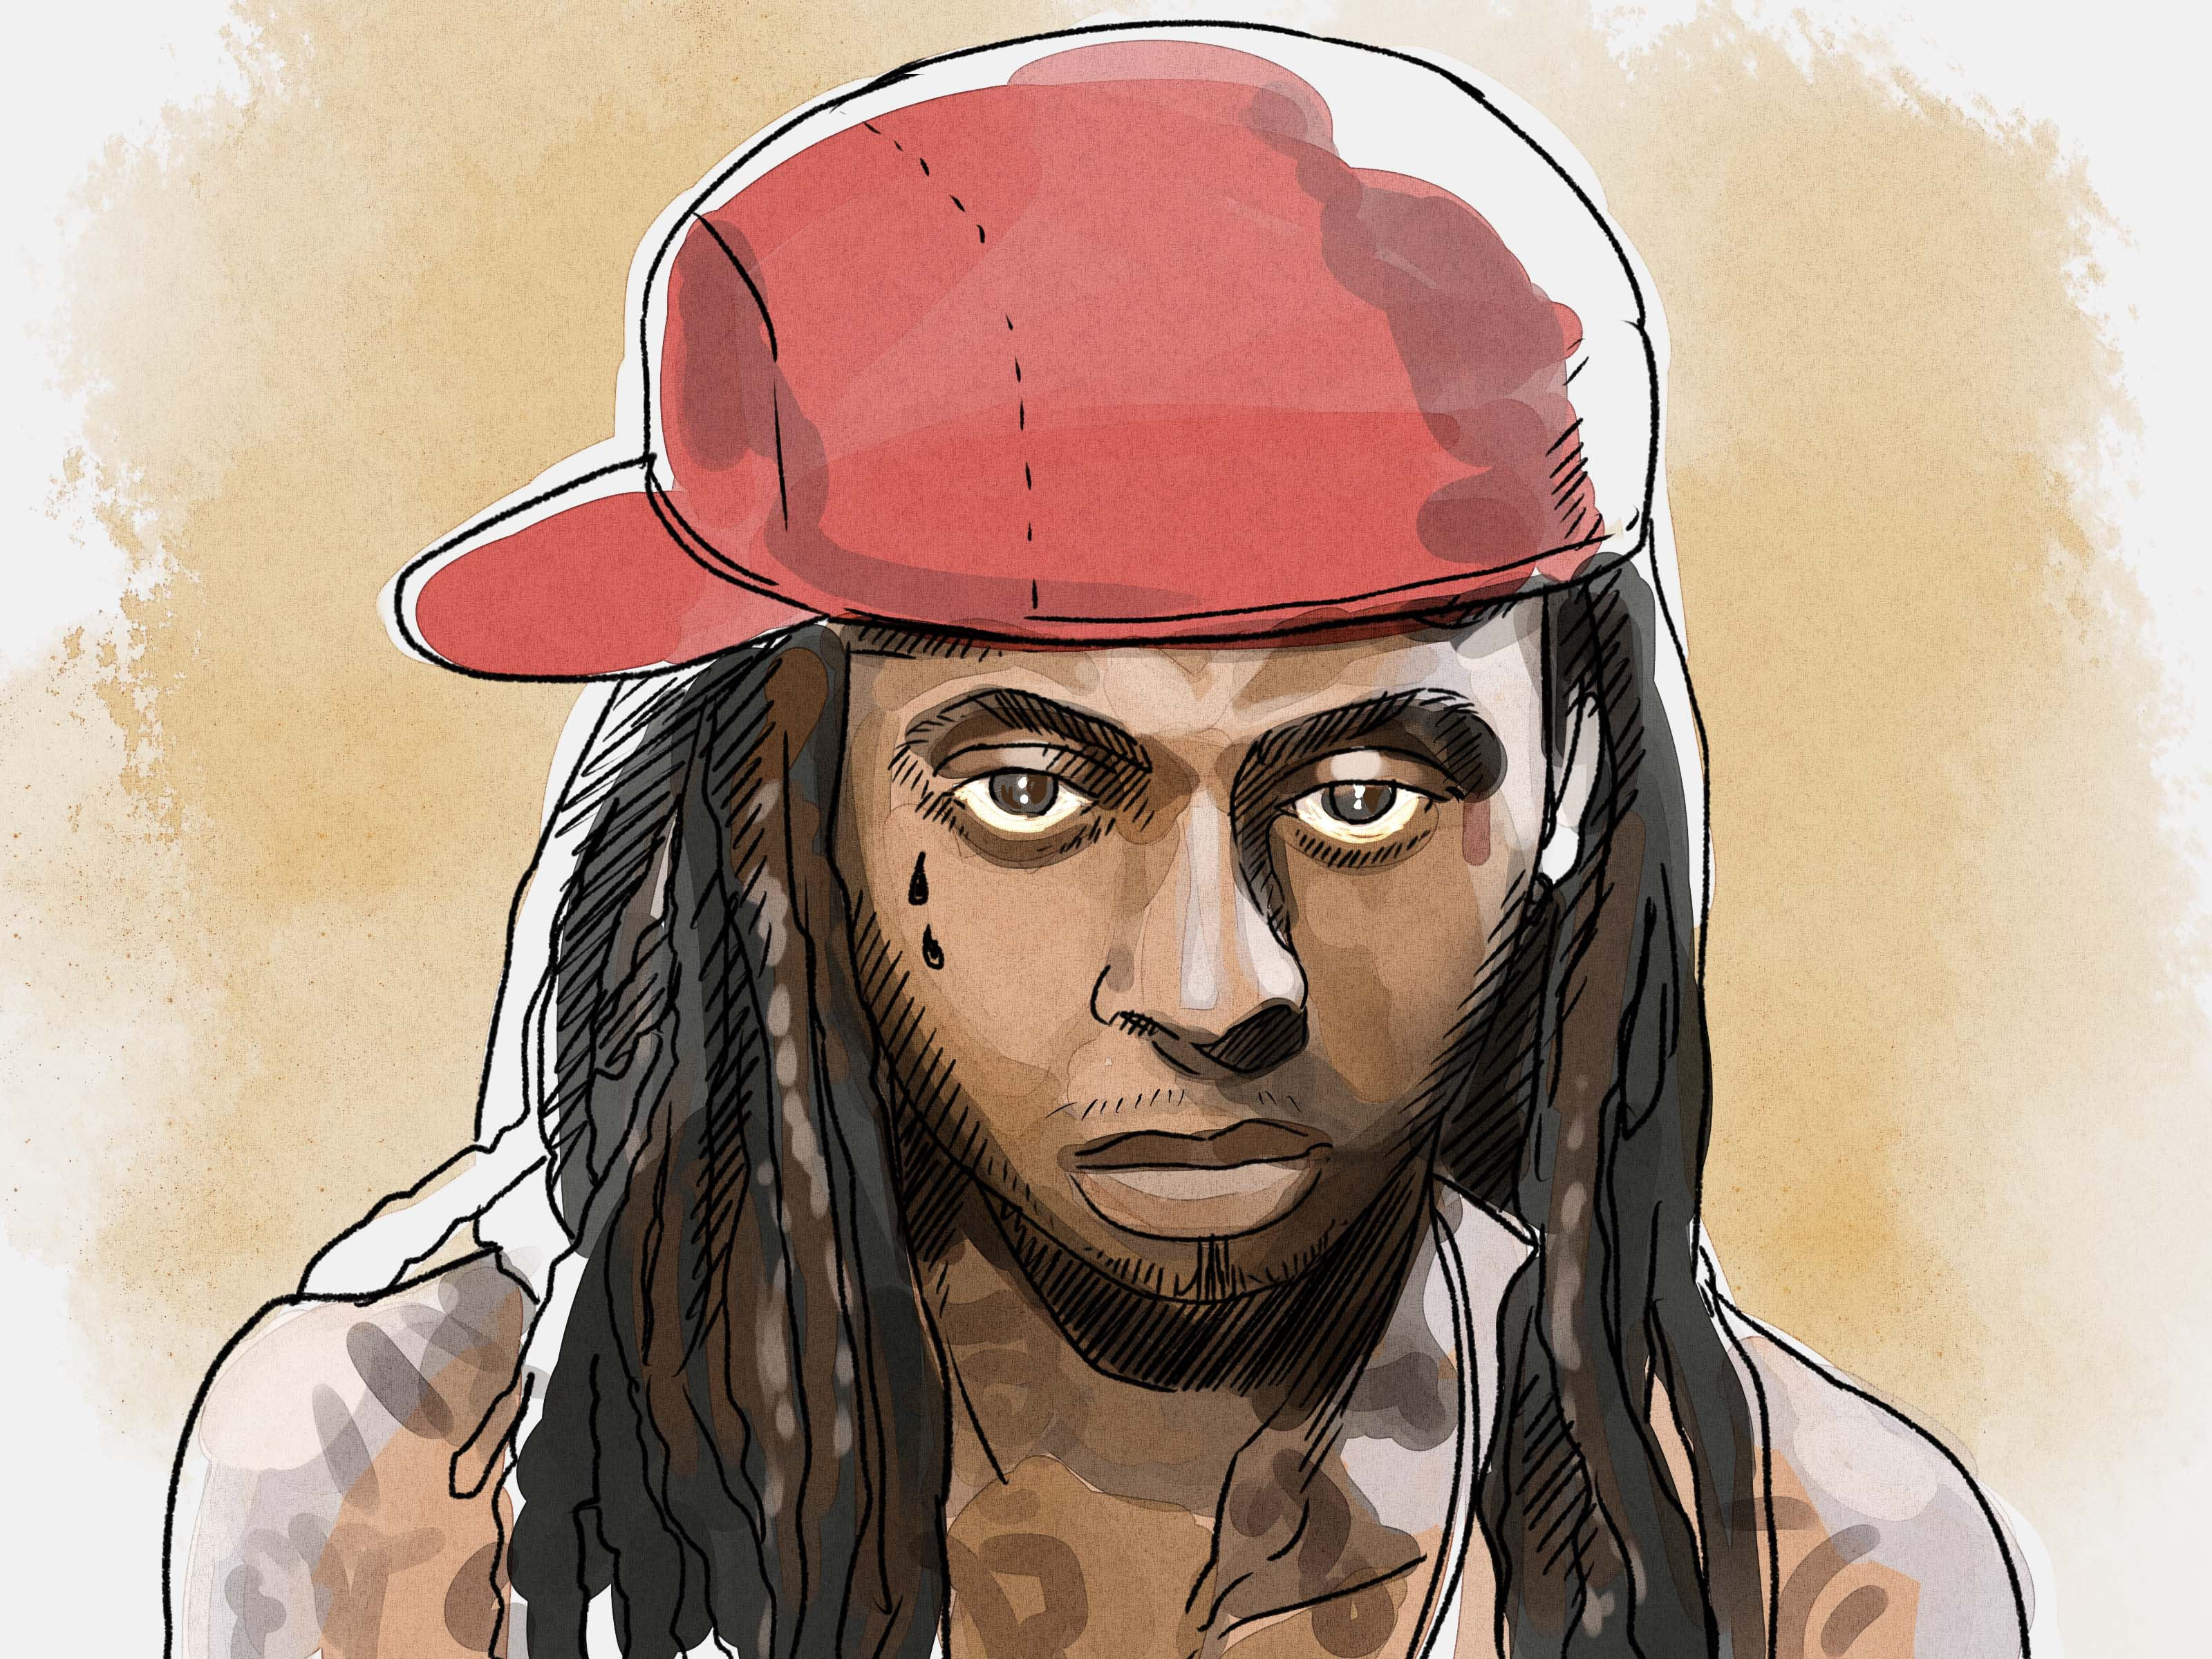 3200x2400 How To Draw Lil Wayne 13 Steps (With Pictures)